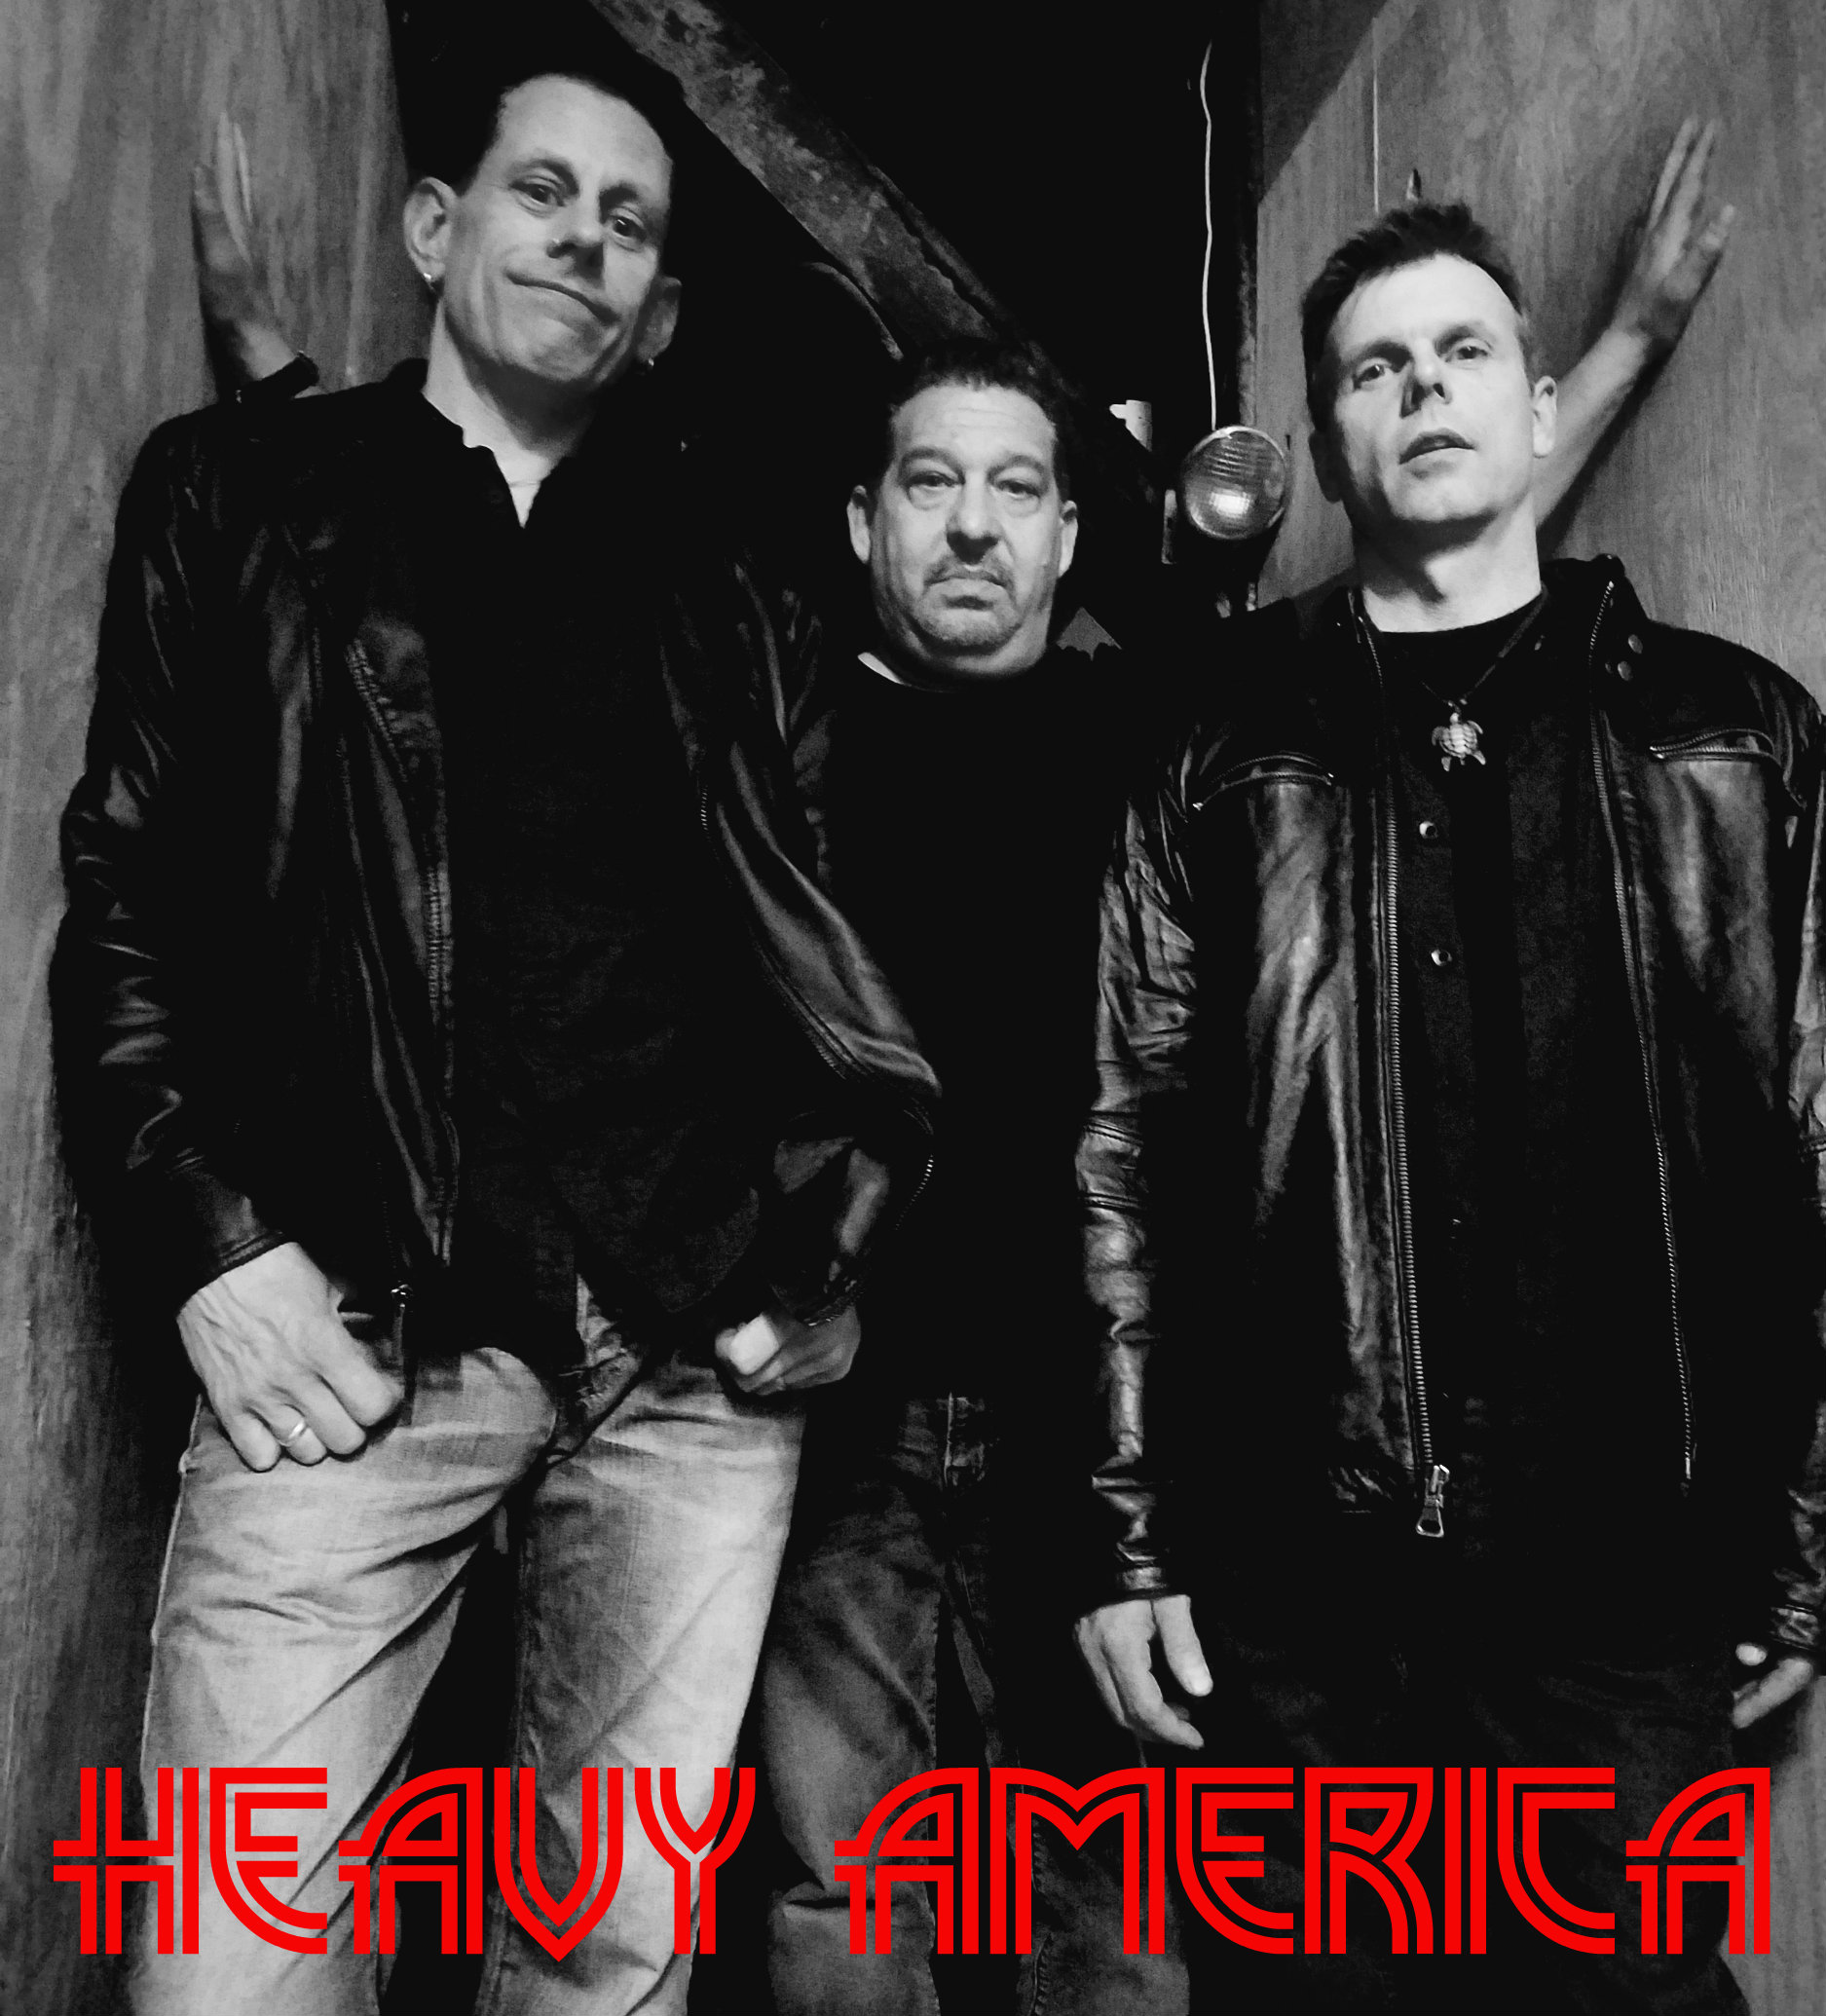 Rock Band Heavy AmericA releases New Song 'Heavy Eyes'